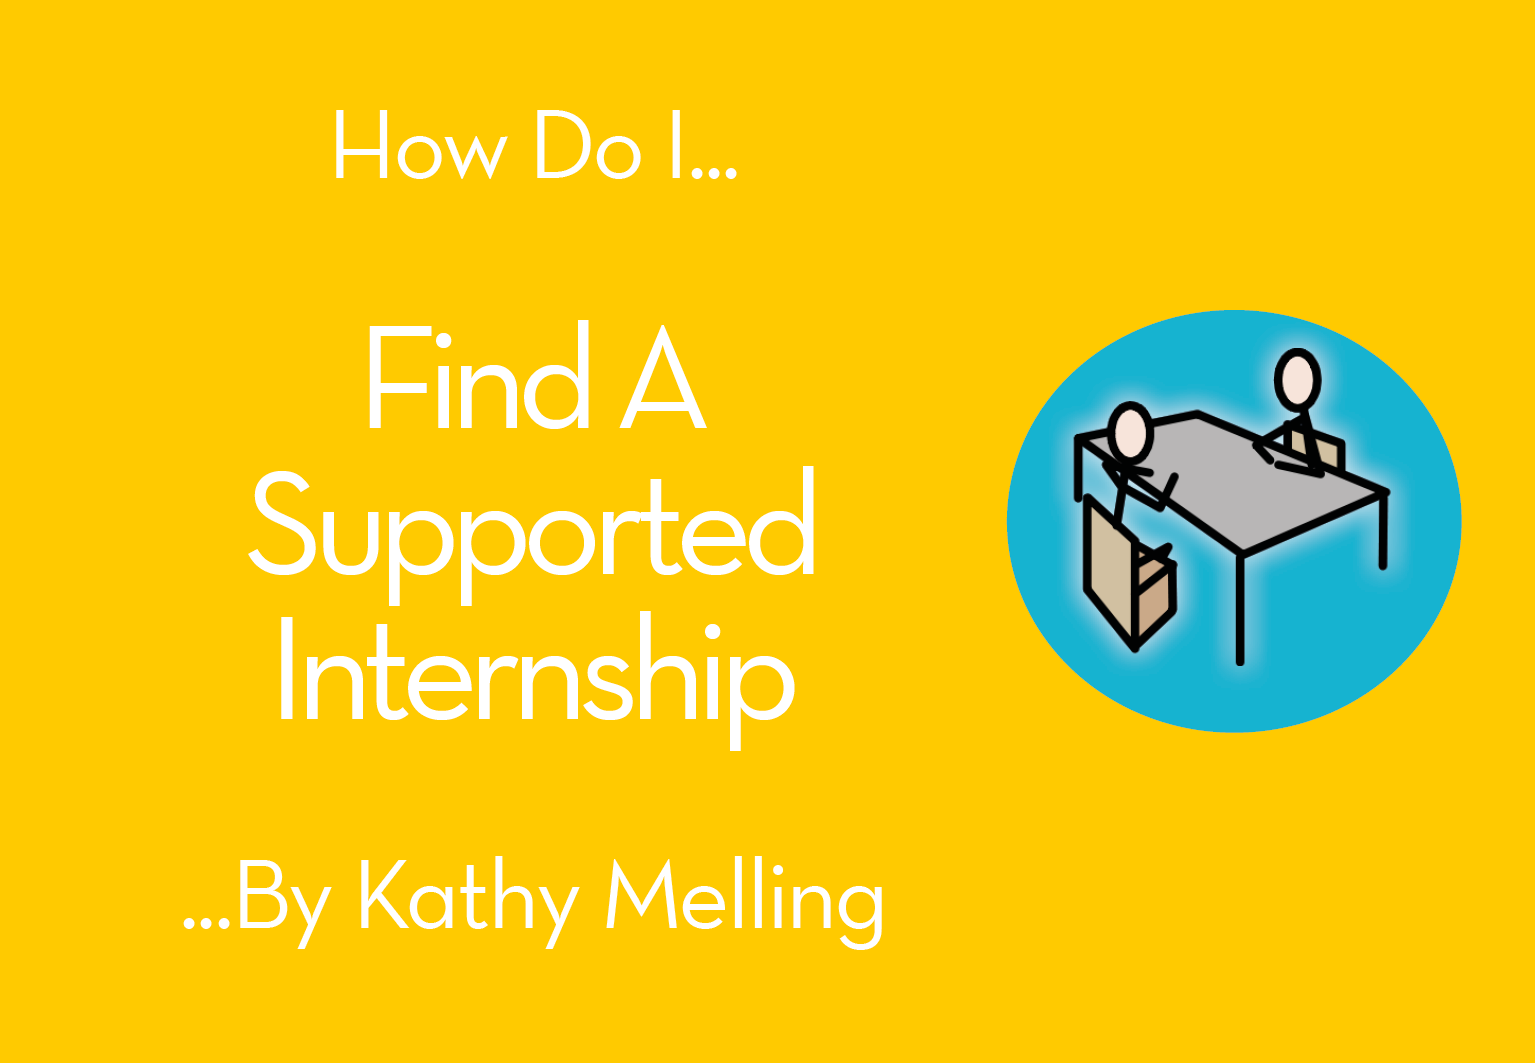 How Do I…Find A Supported Internship by Kathy Melling